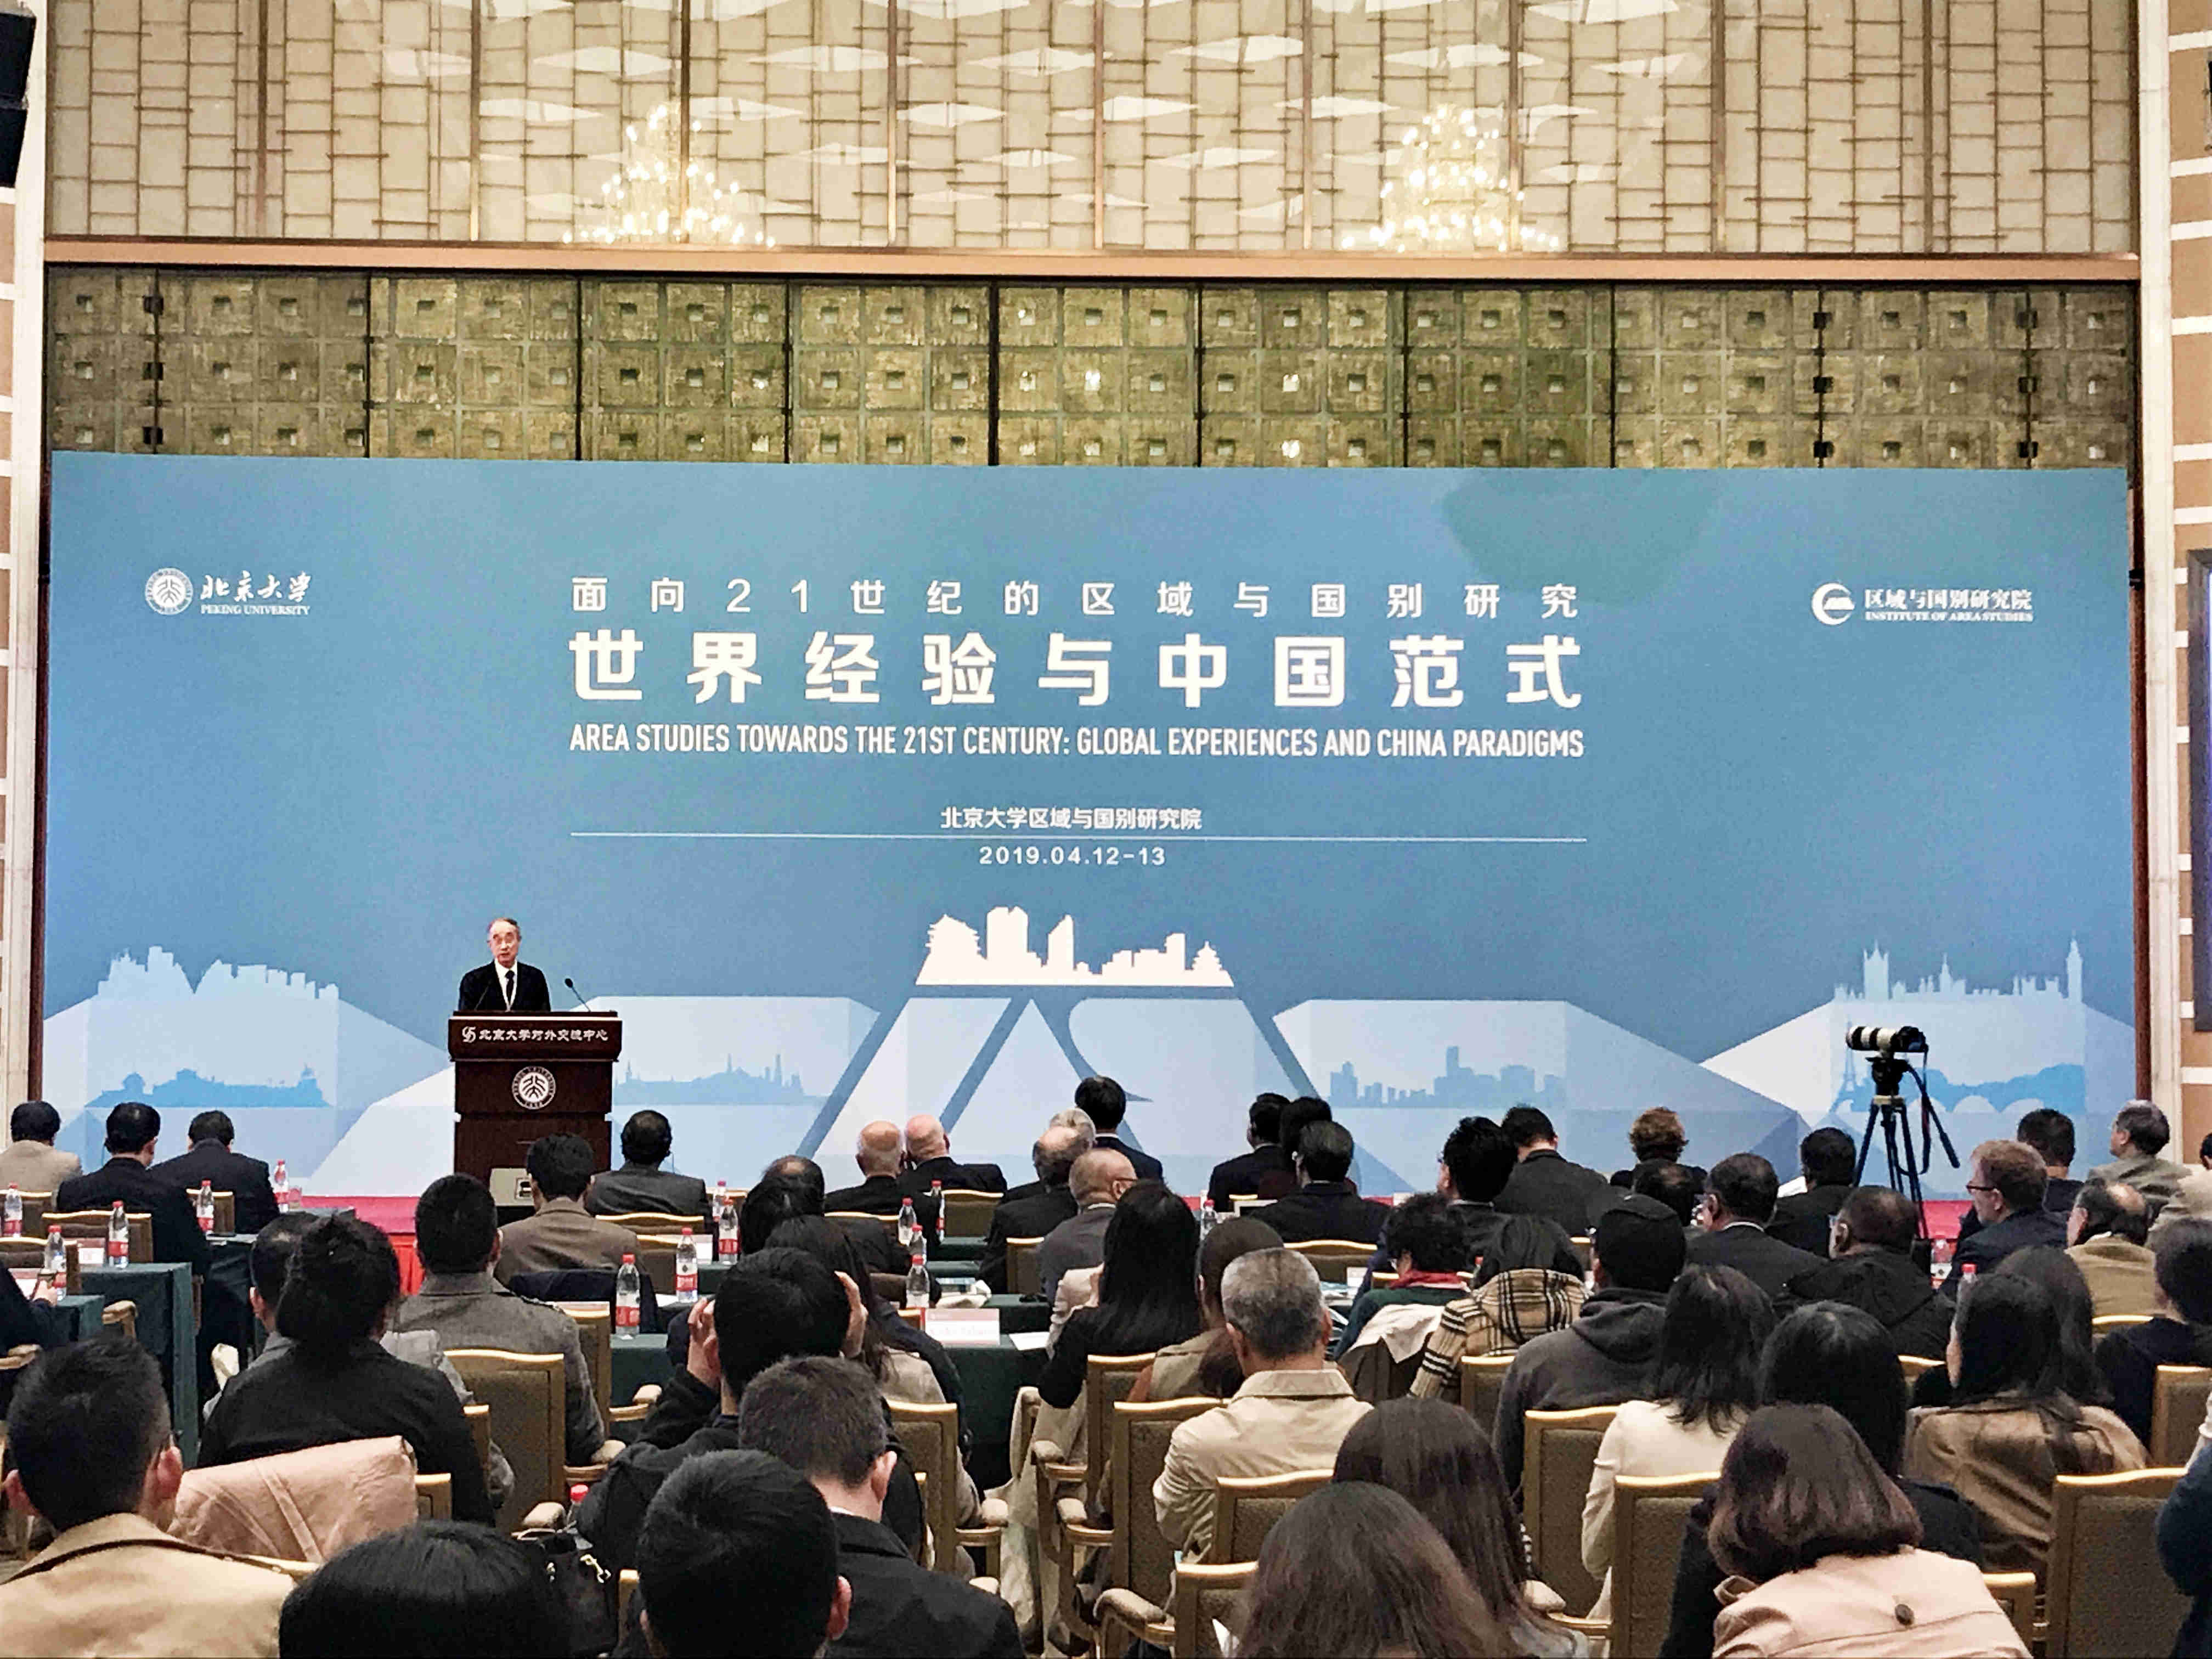 Forum on Global Experiences and China Paradigms begins